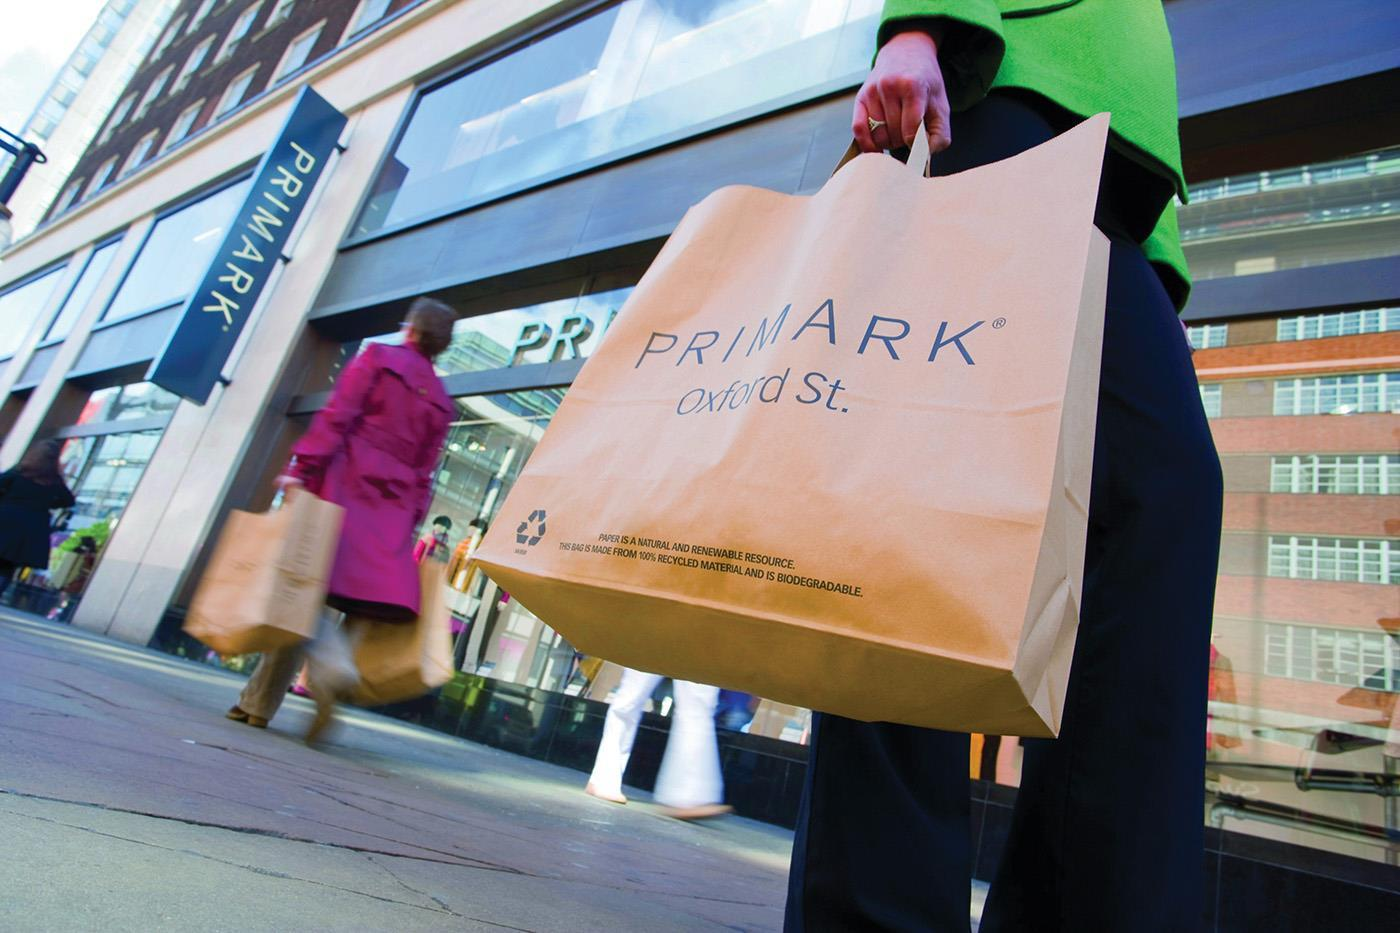 primark ownership 2 reviews of primark i normally don't like shopping for clothes the huge pricetag usually really puts me off as a result, i absolutely love primark and all it offers - decent fashions for dirt cheap prices.